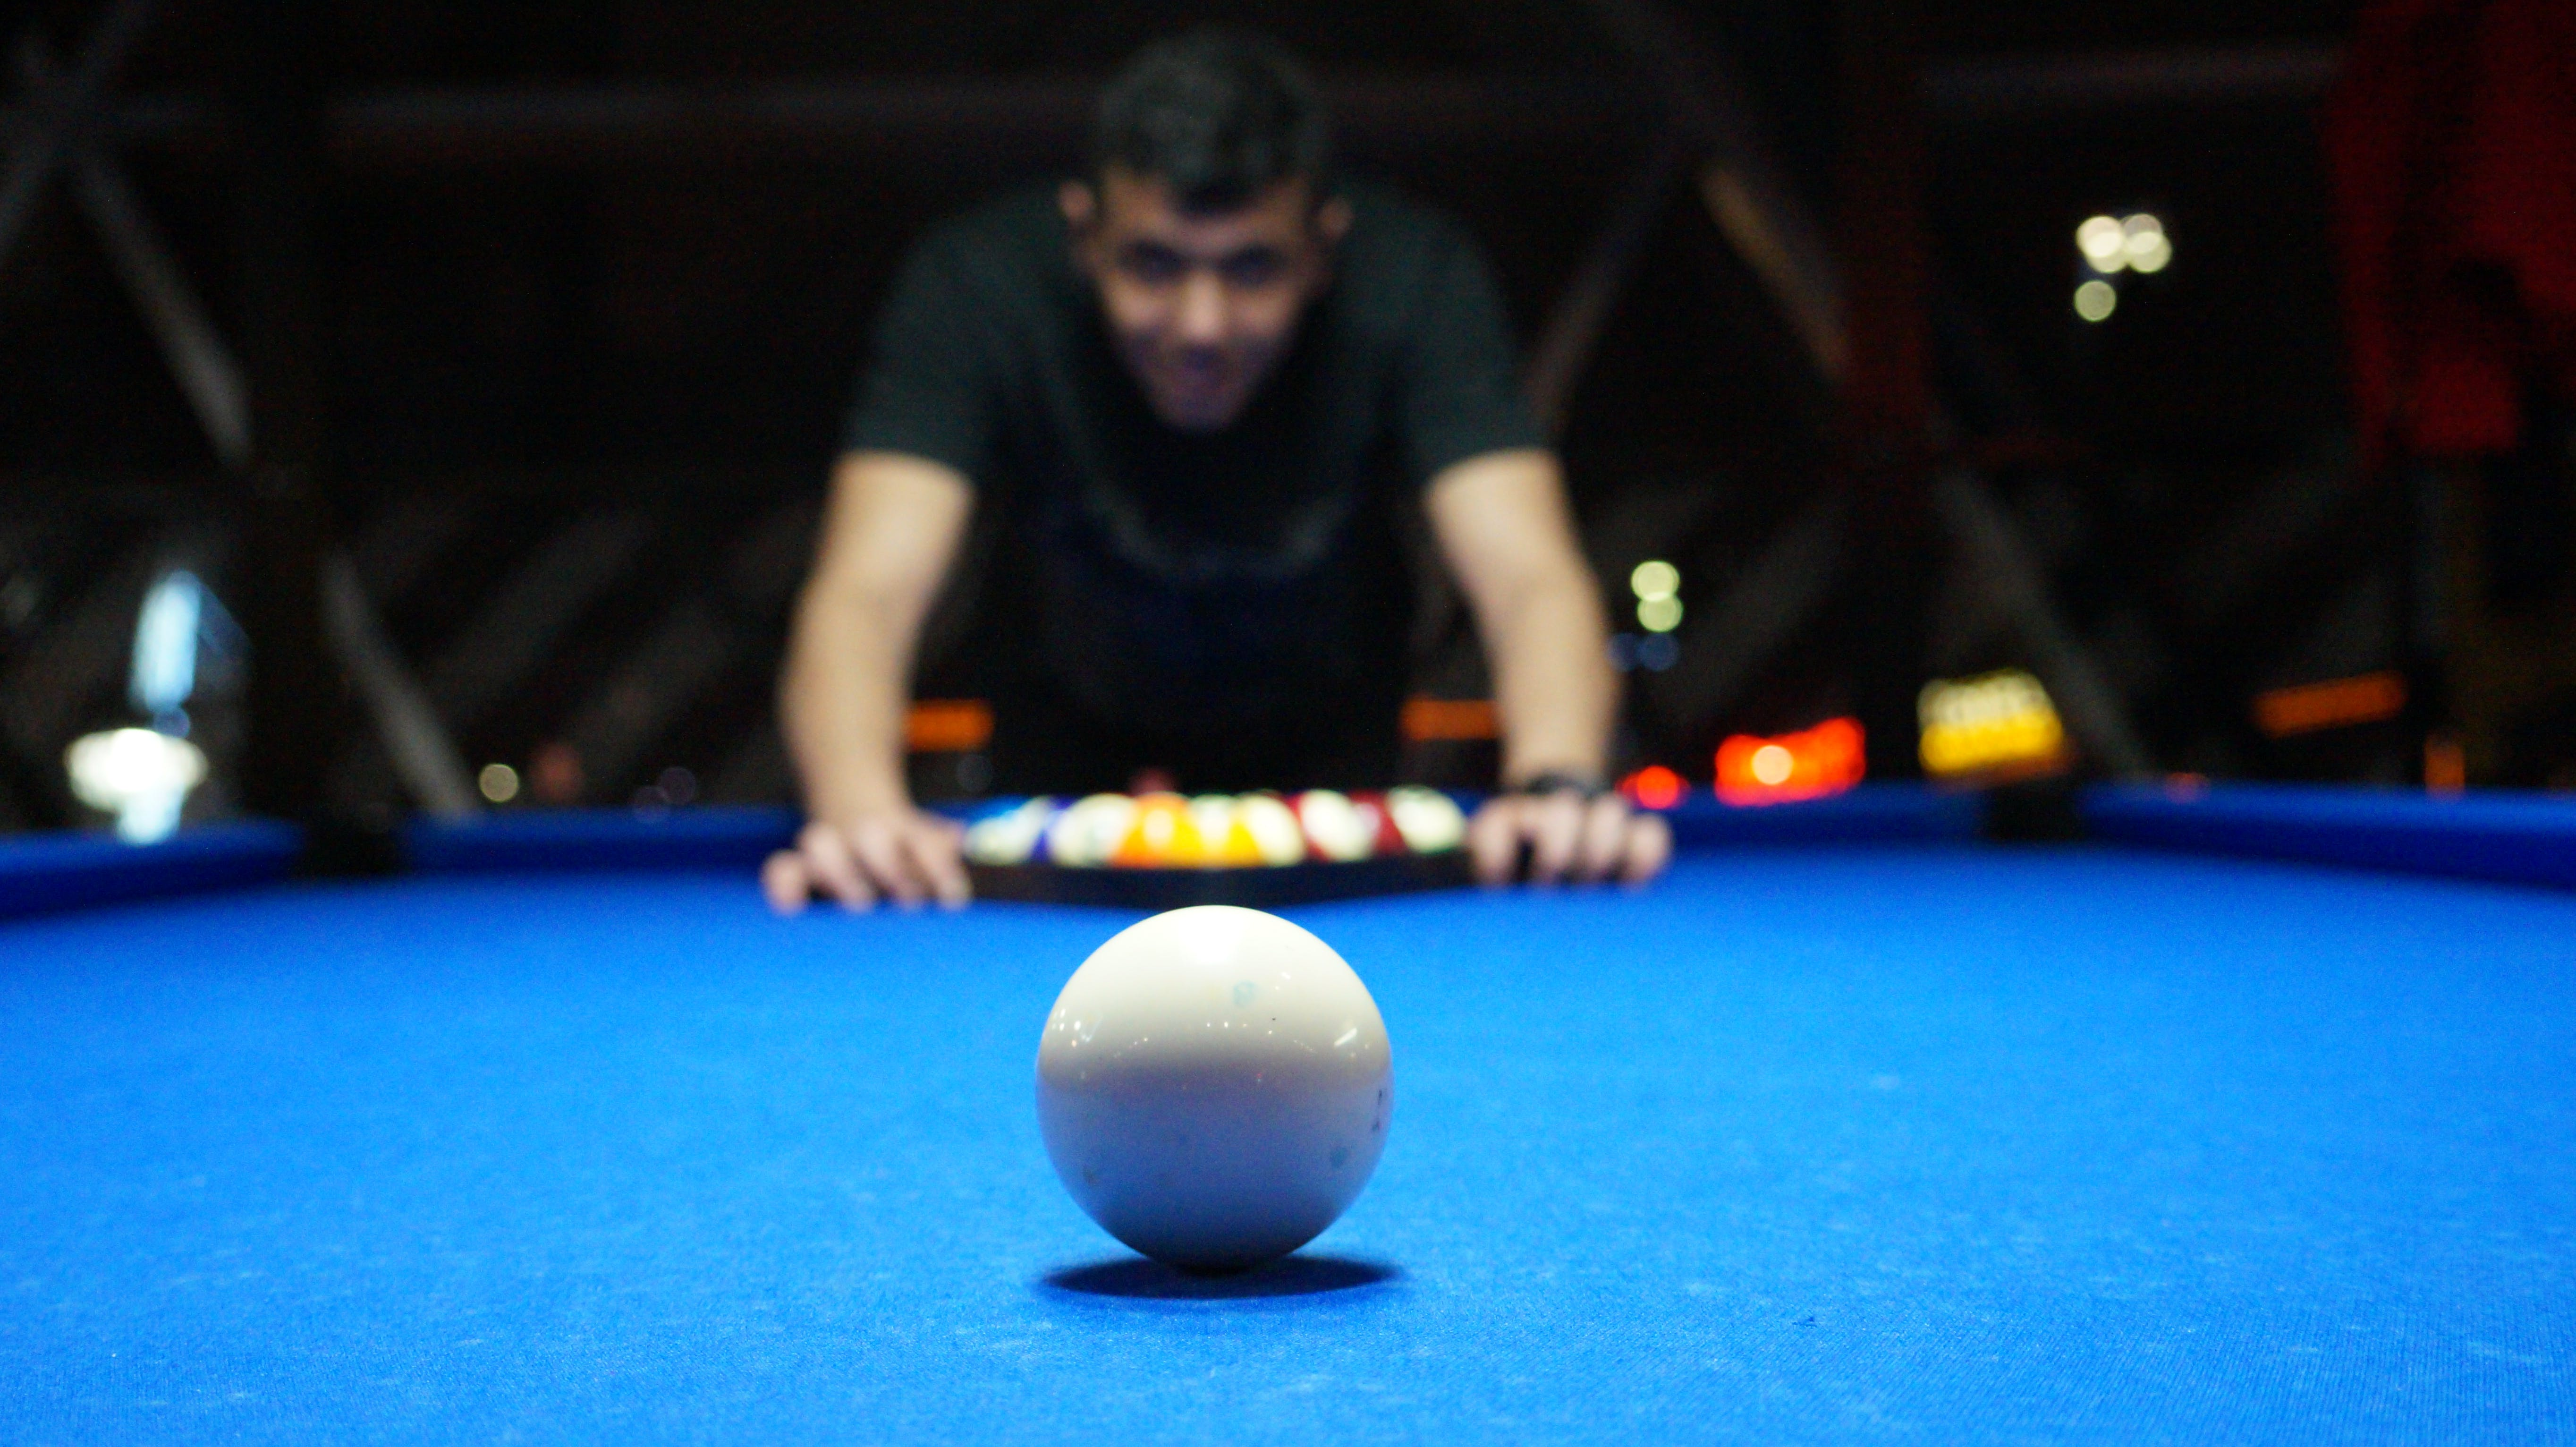 Free stock photo of person, playing, game, pool billiards